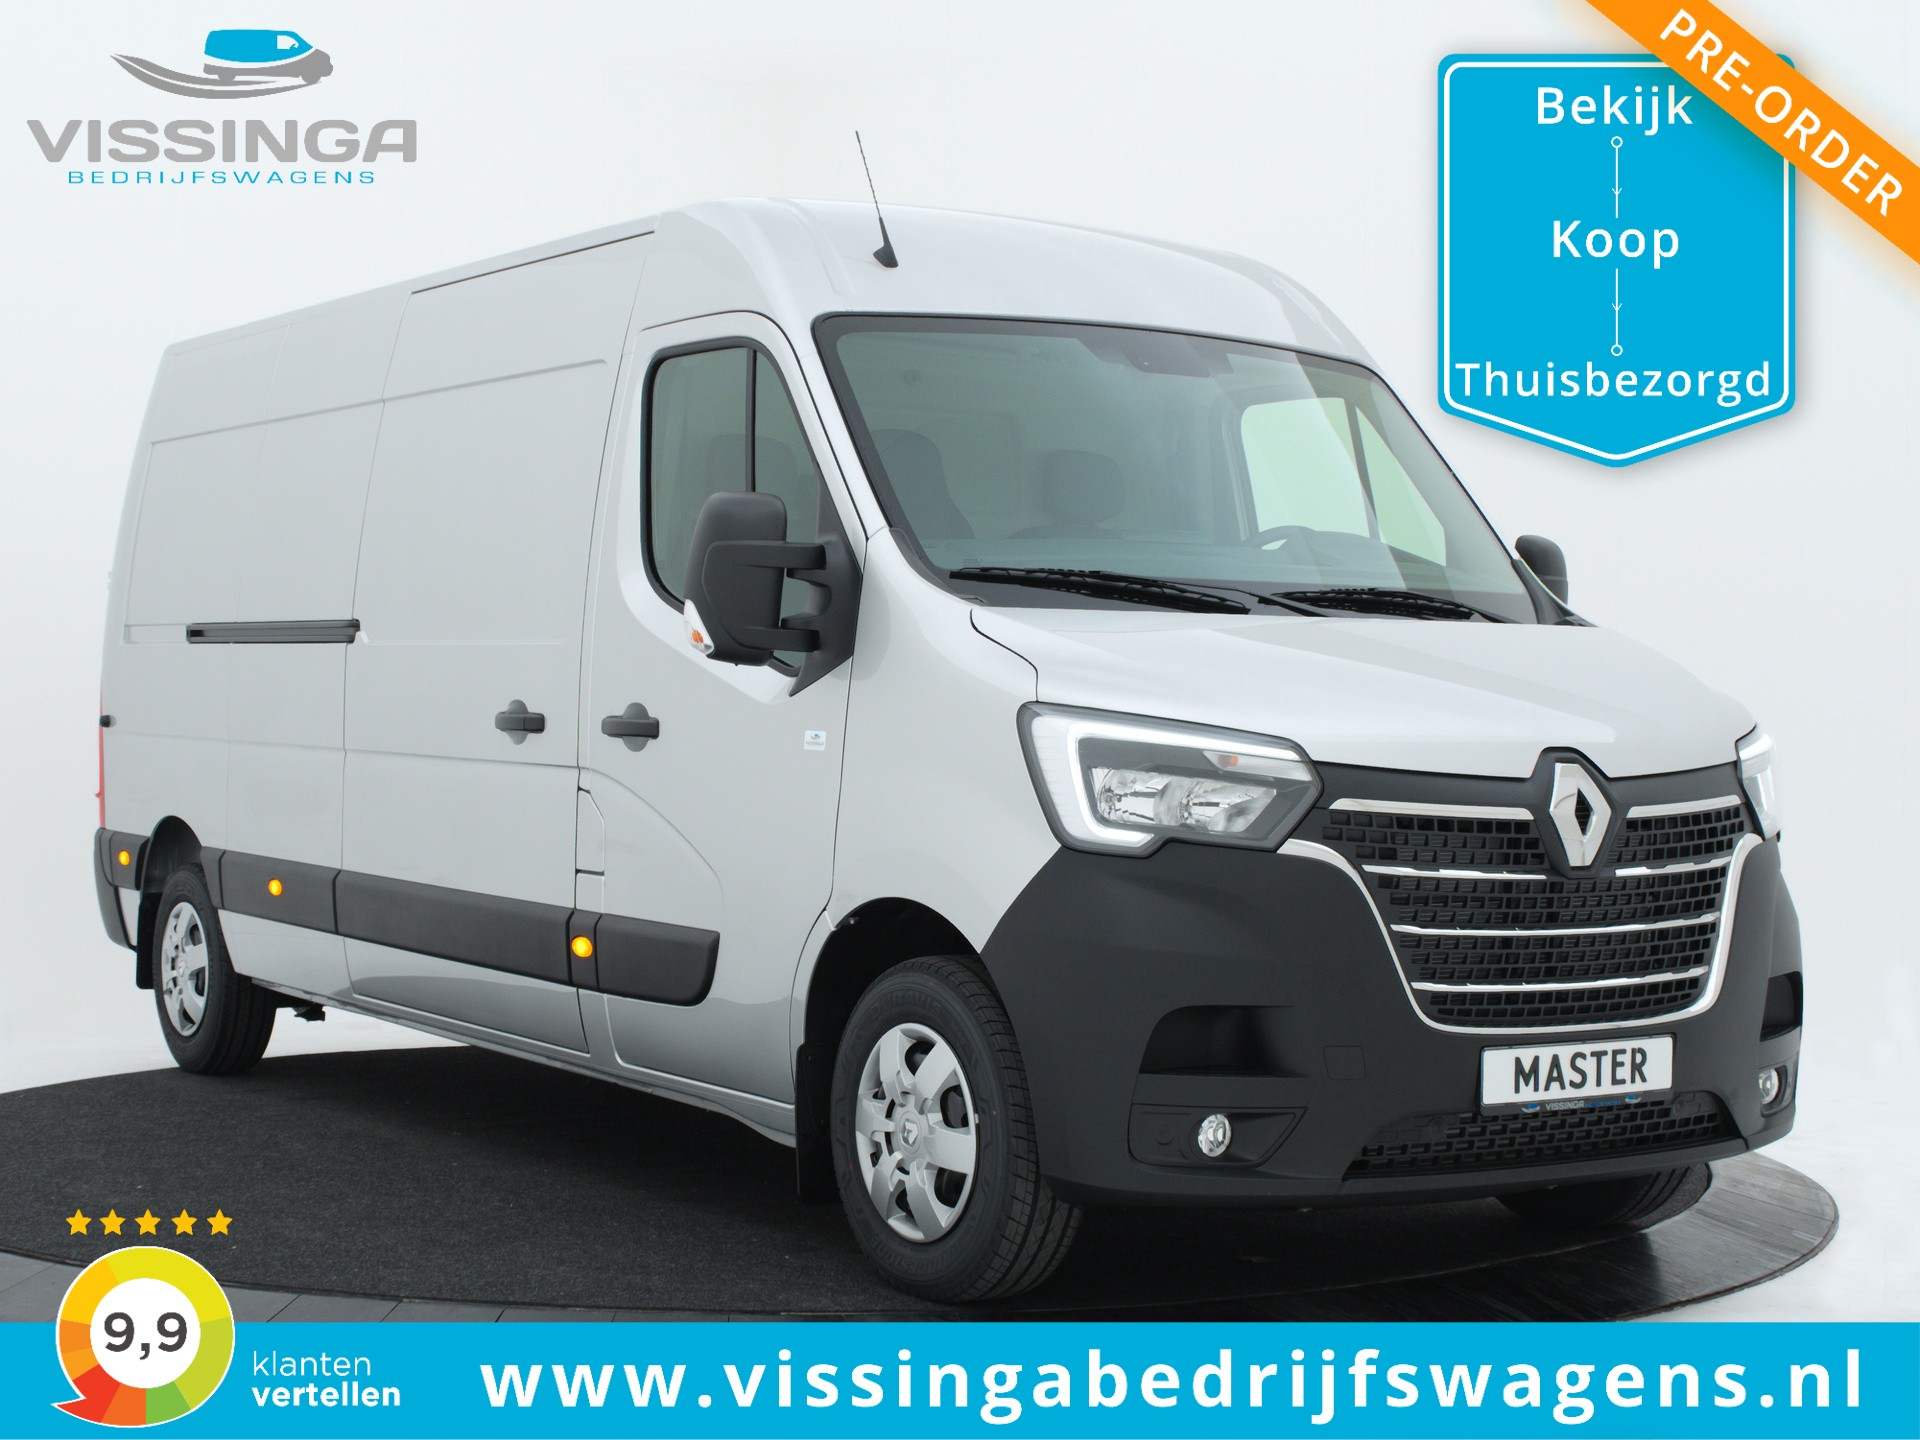 Renault Master T35 2.3 dCi L3H2 180 pk Twin-Turbo Energy